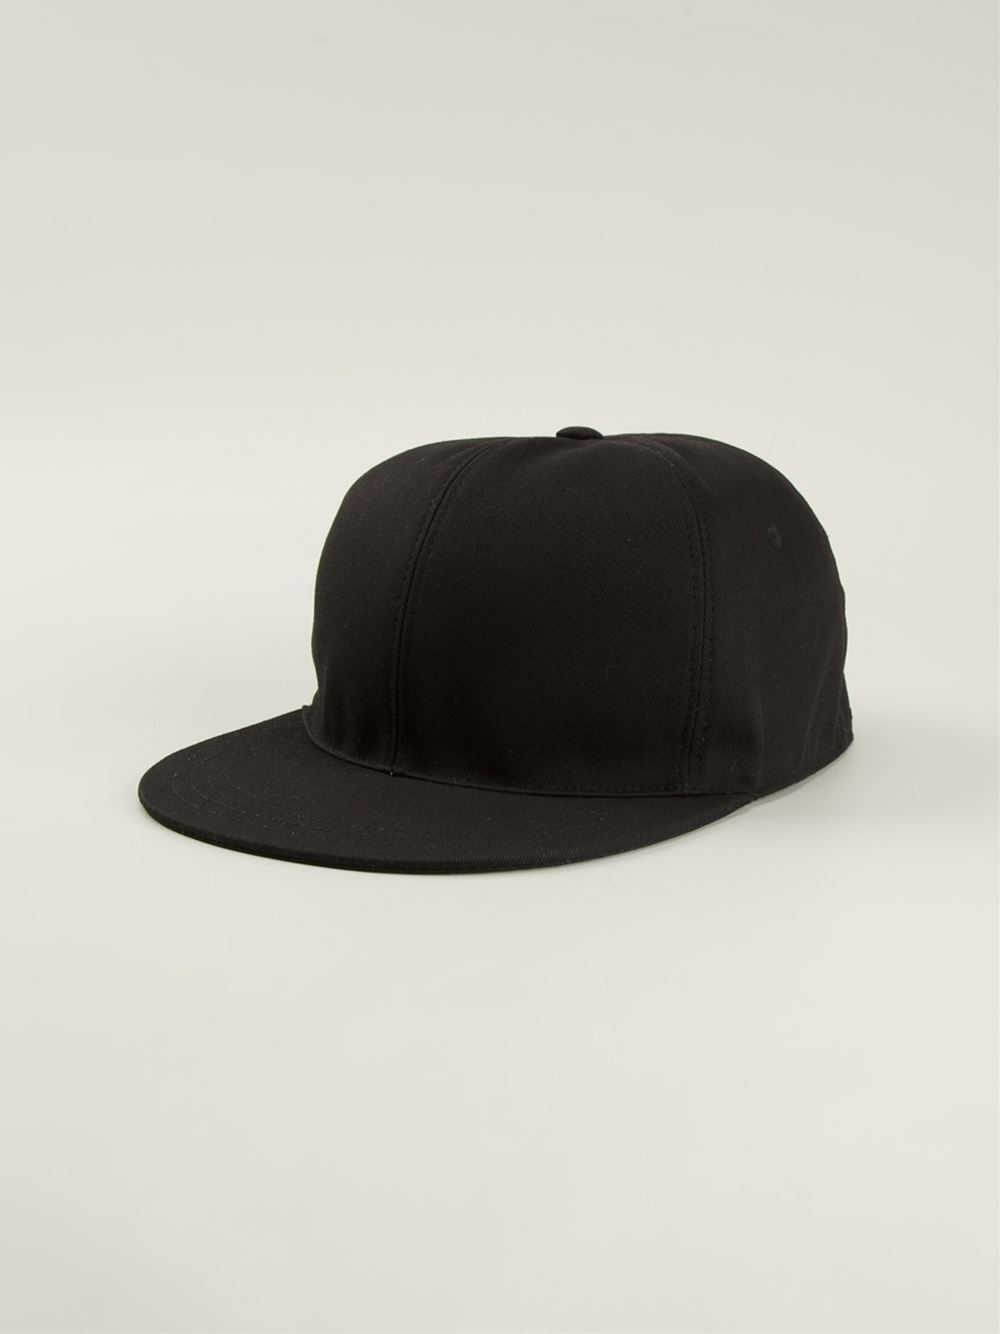 Givenchy Classic Cap - The Webster - Farfetch.com